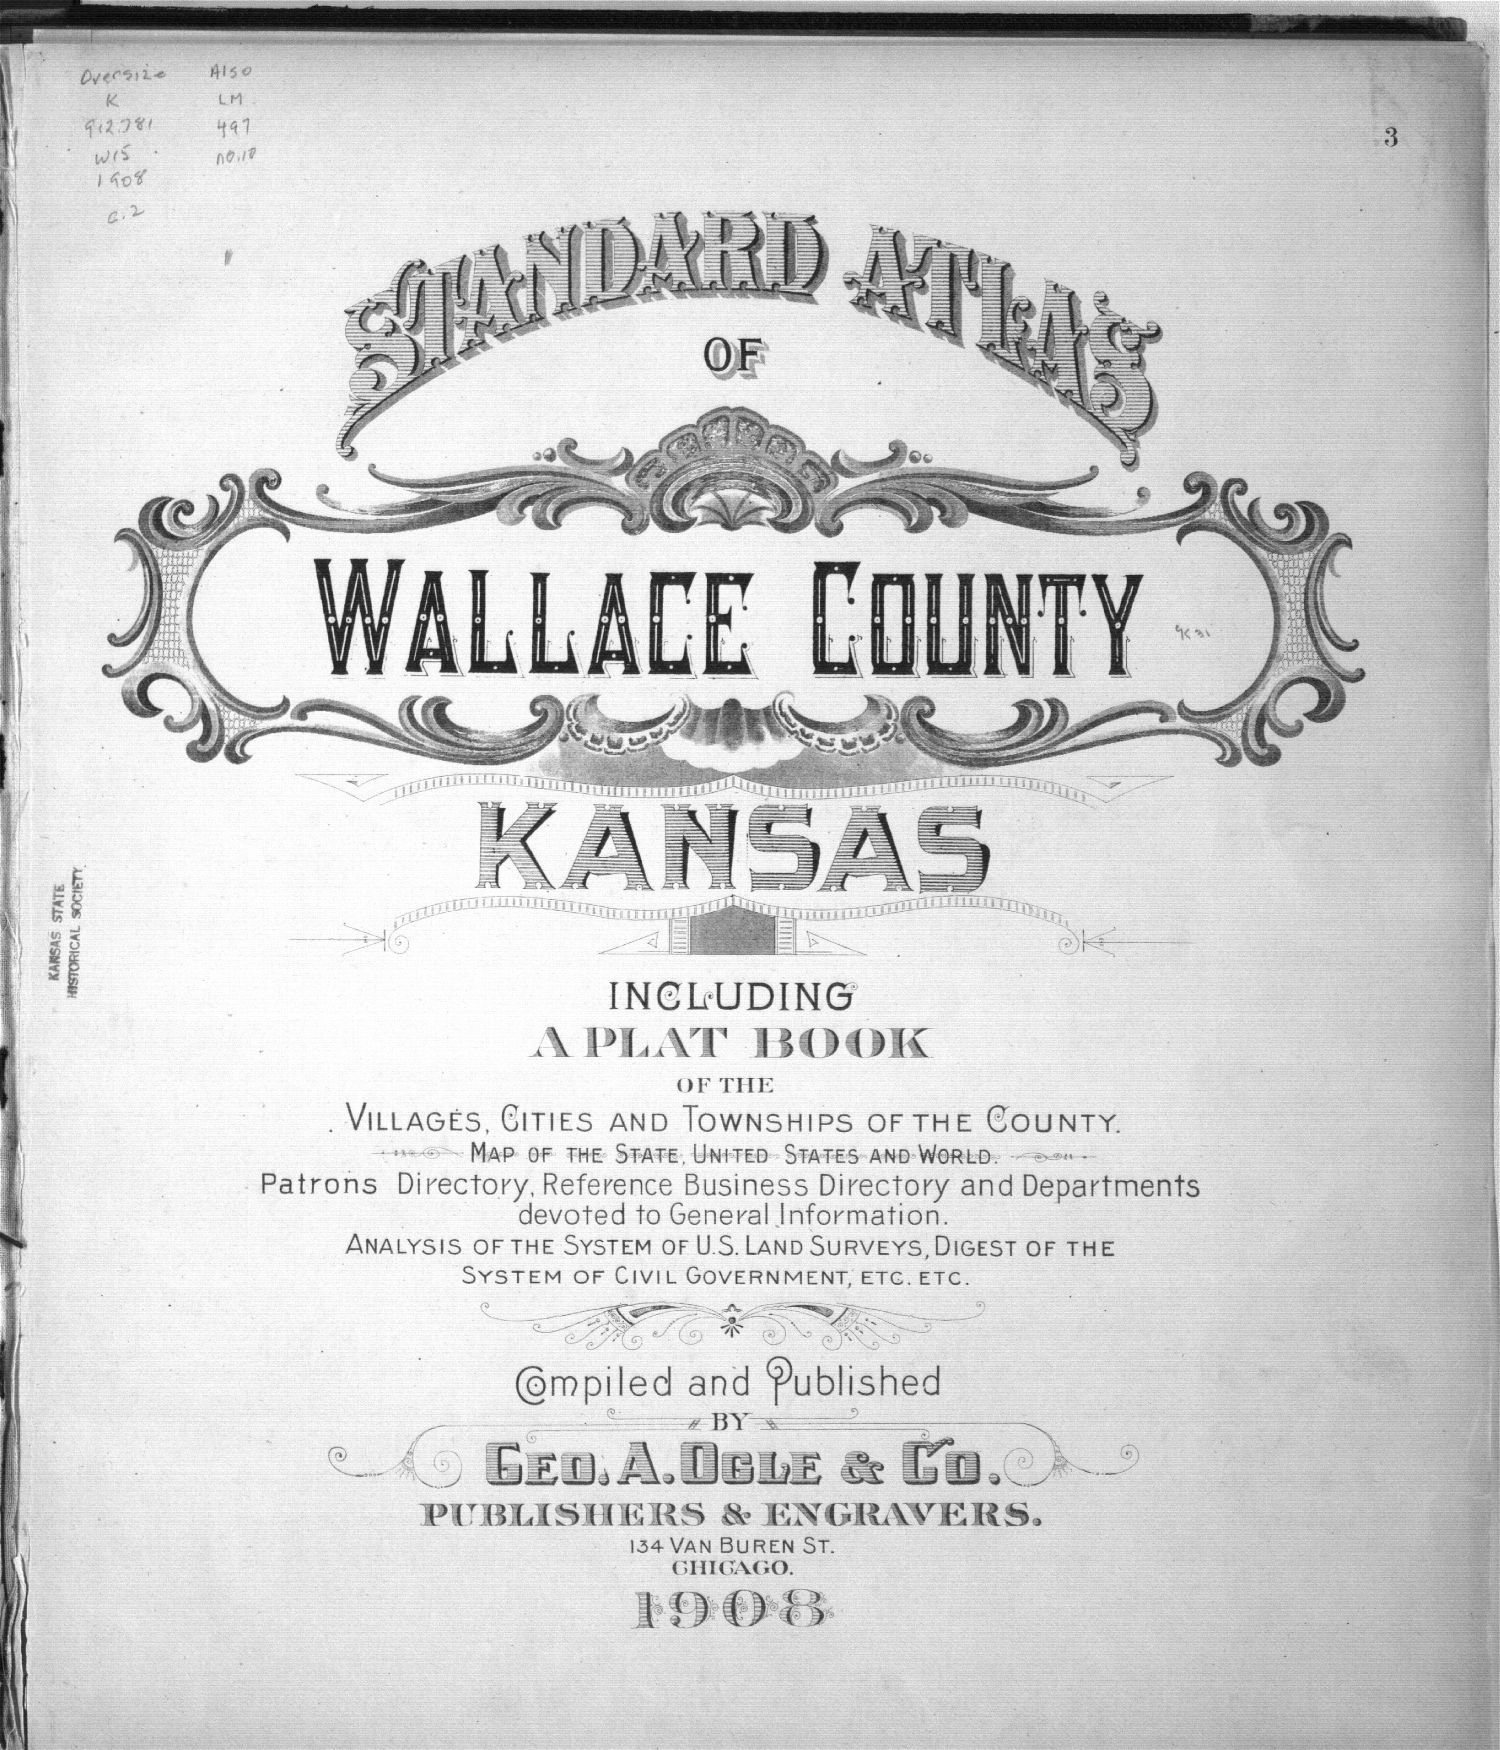 Standard atlas of Wallace County, Kansas - Title Page